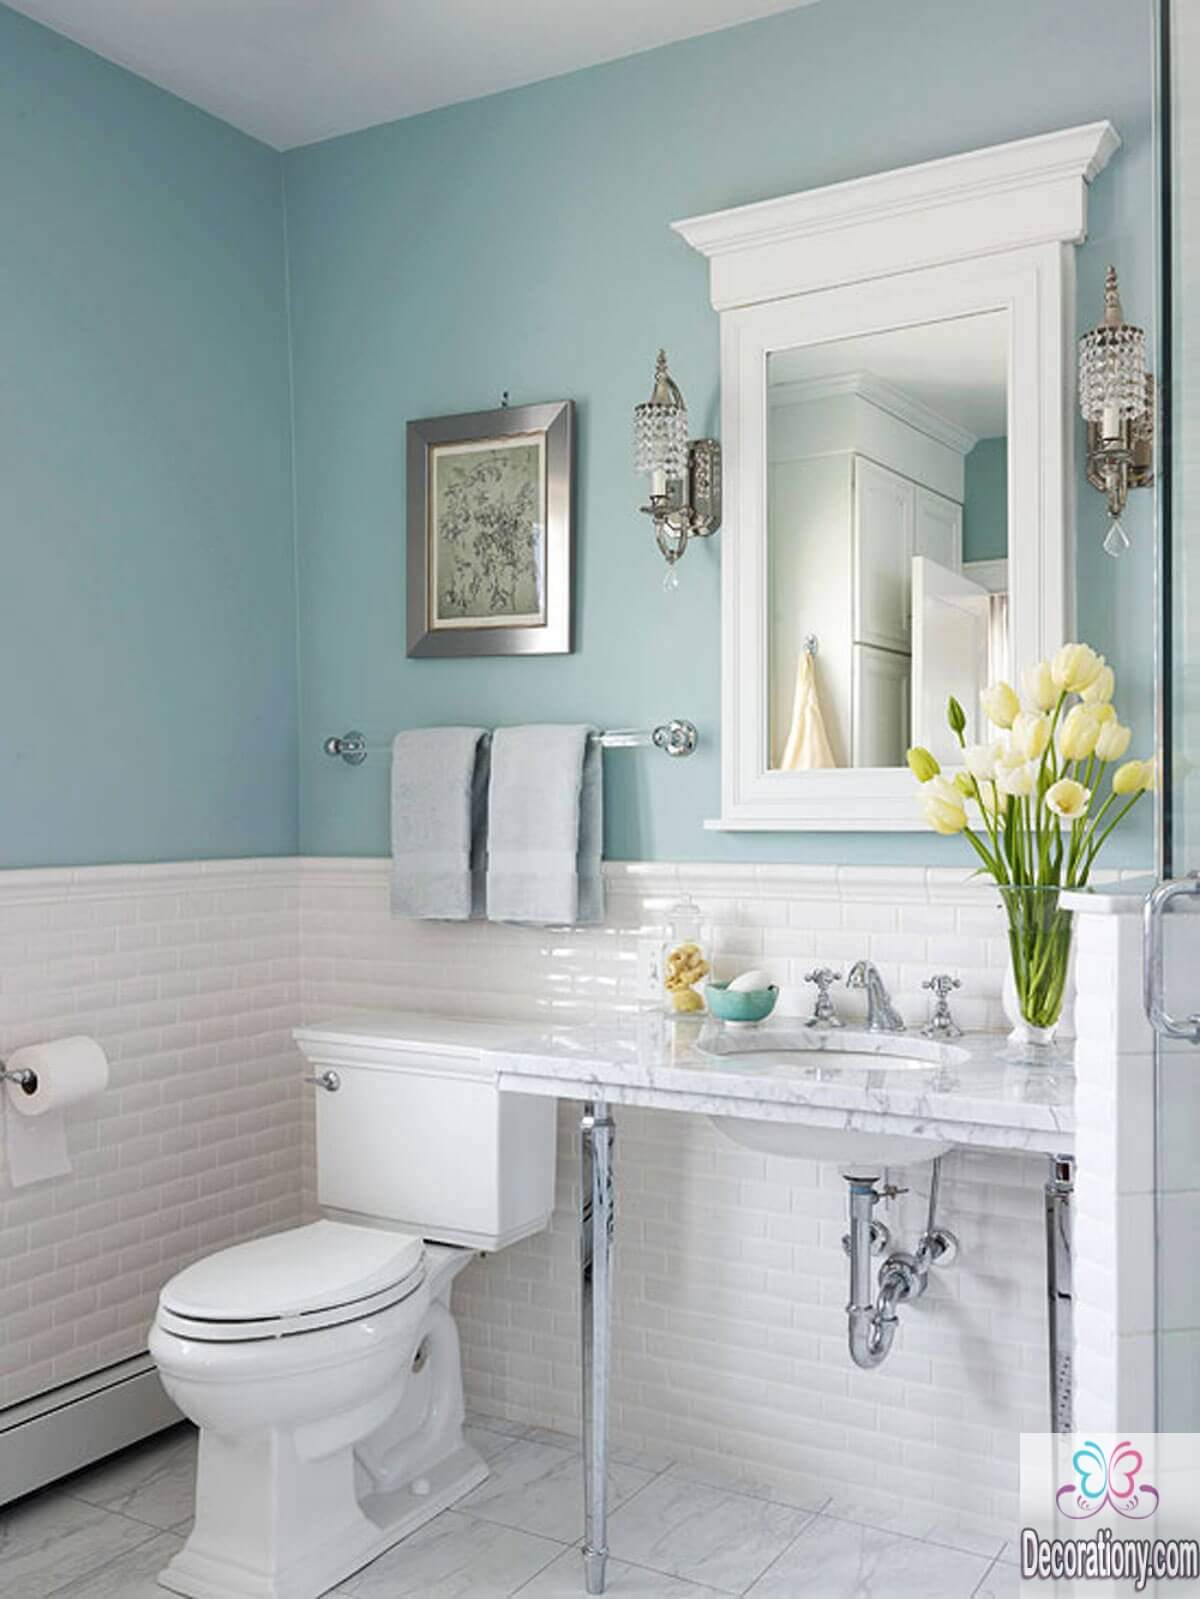 10 Affordable Colors for Small Bathrooms - Decoration Y